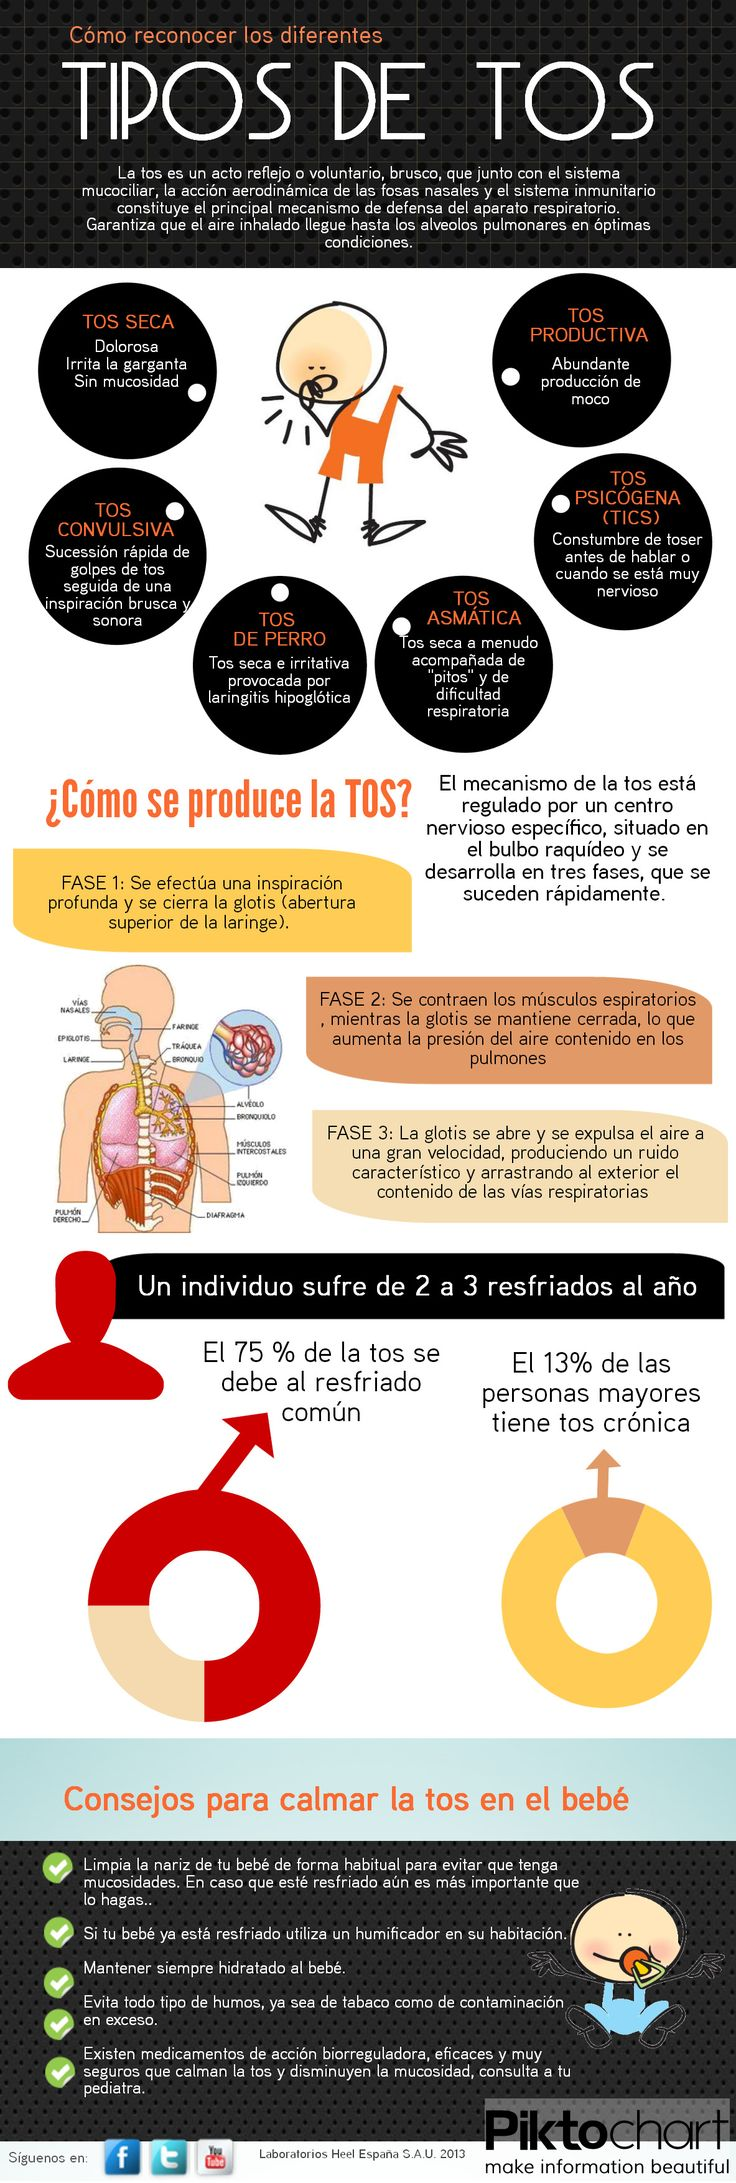 121 best Cuerpo humano images on Pinterest